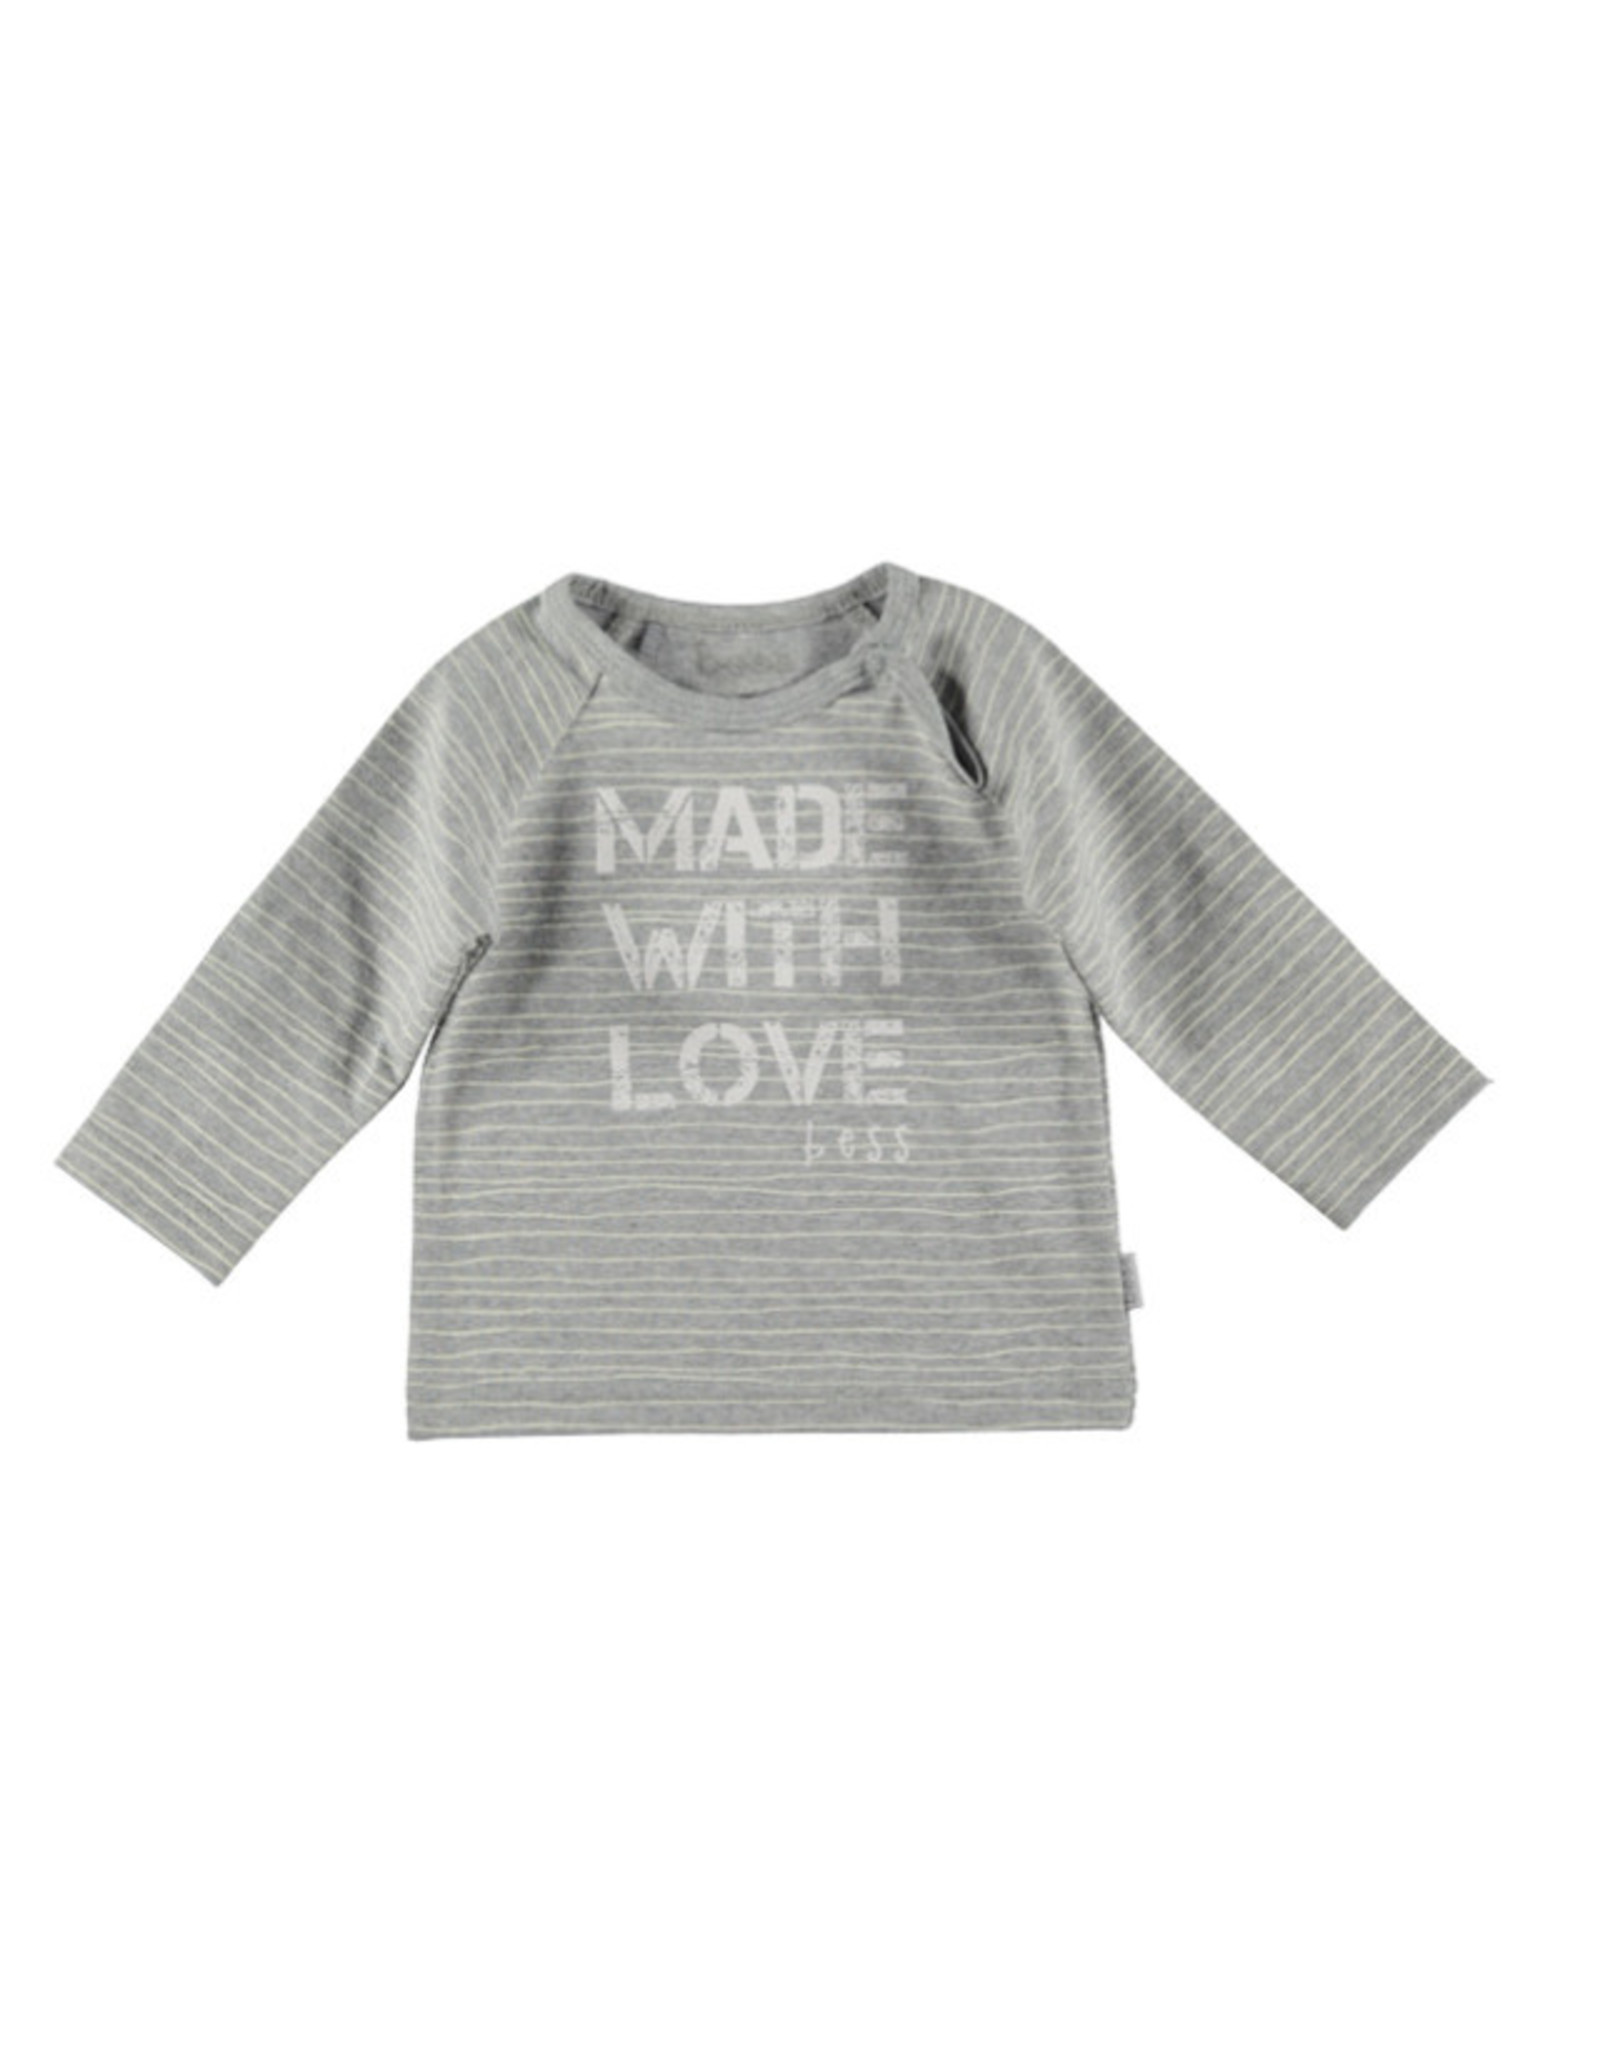 BESS Bess longsleeve Made with love pinstripe white NOS